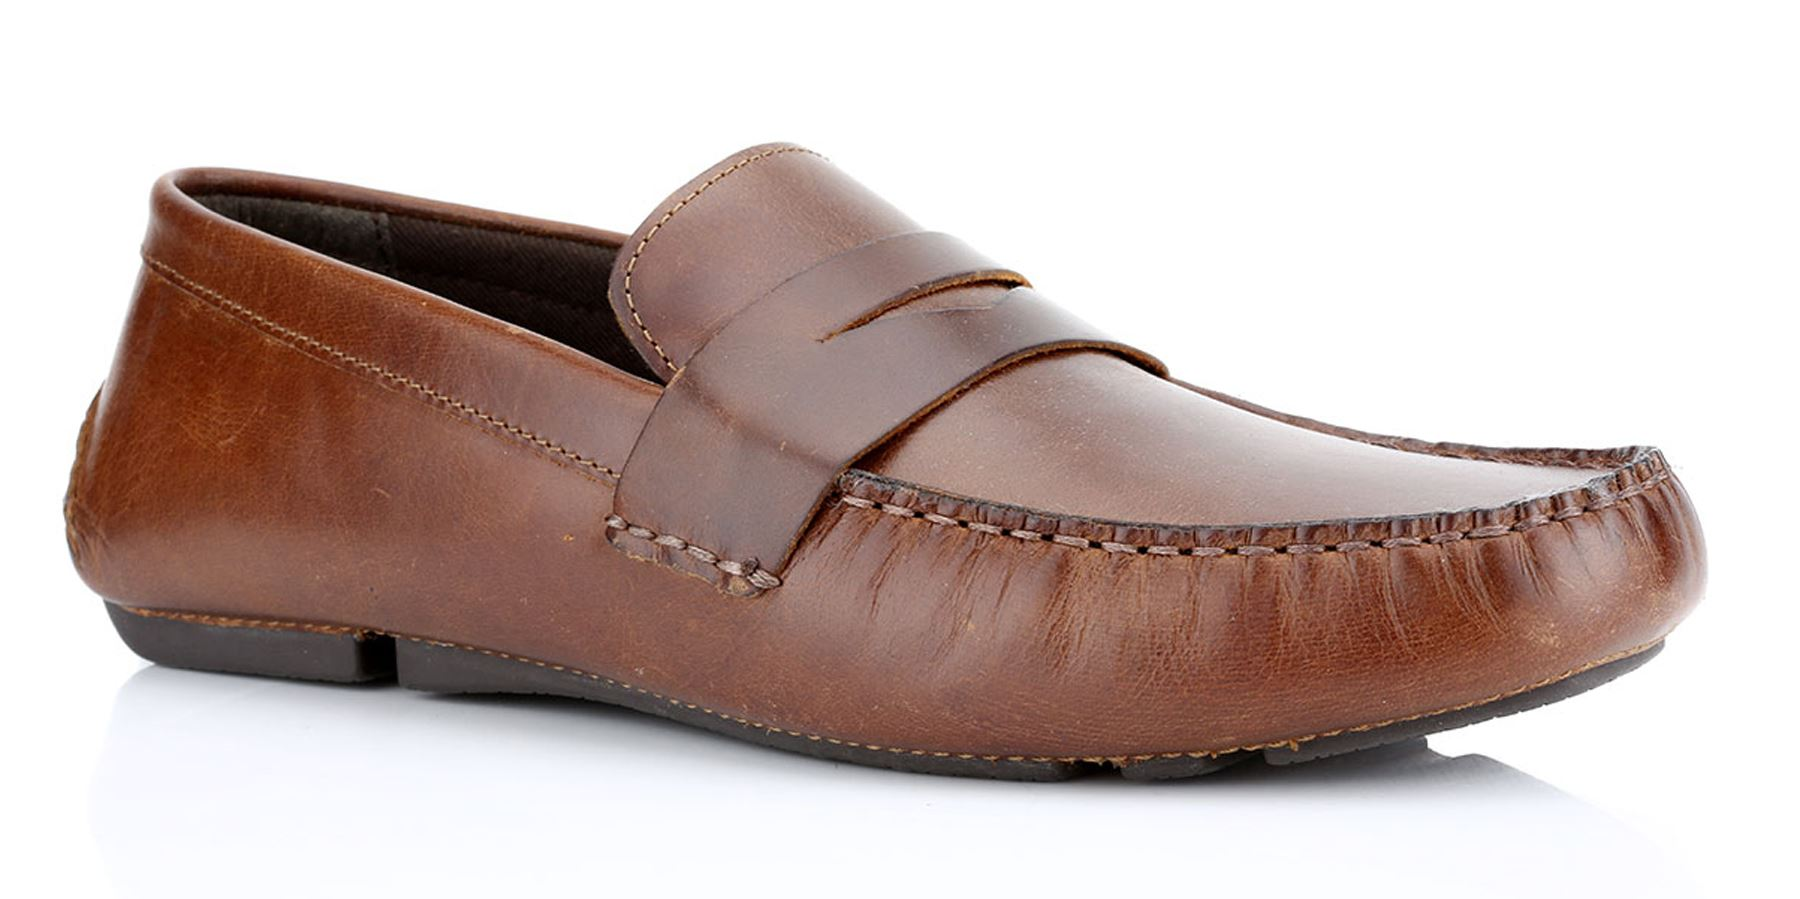 852336d0720 Details about Red Tape Cranfield Leather Mens Casual Driving Shoes Brown